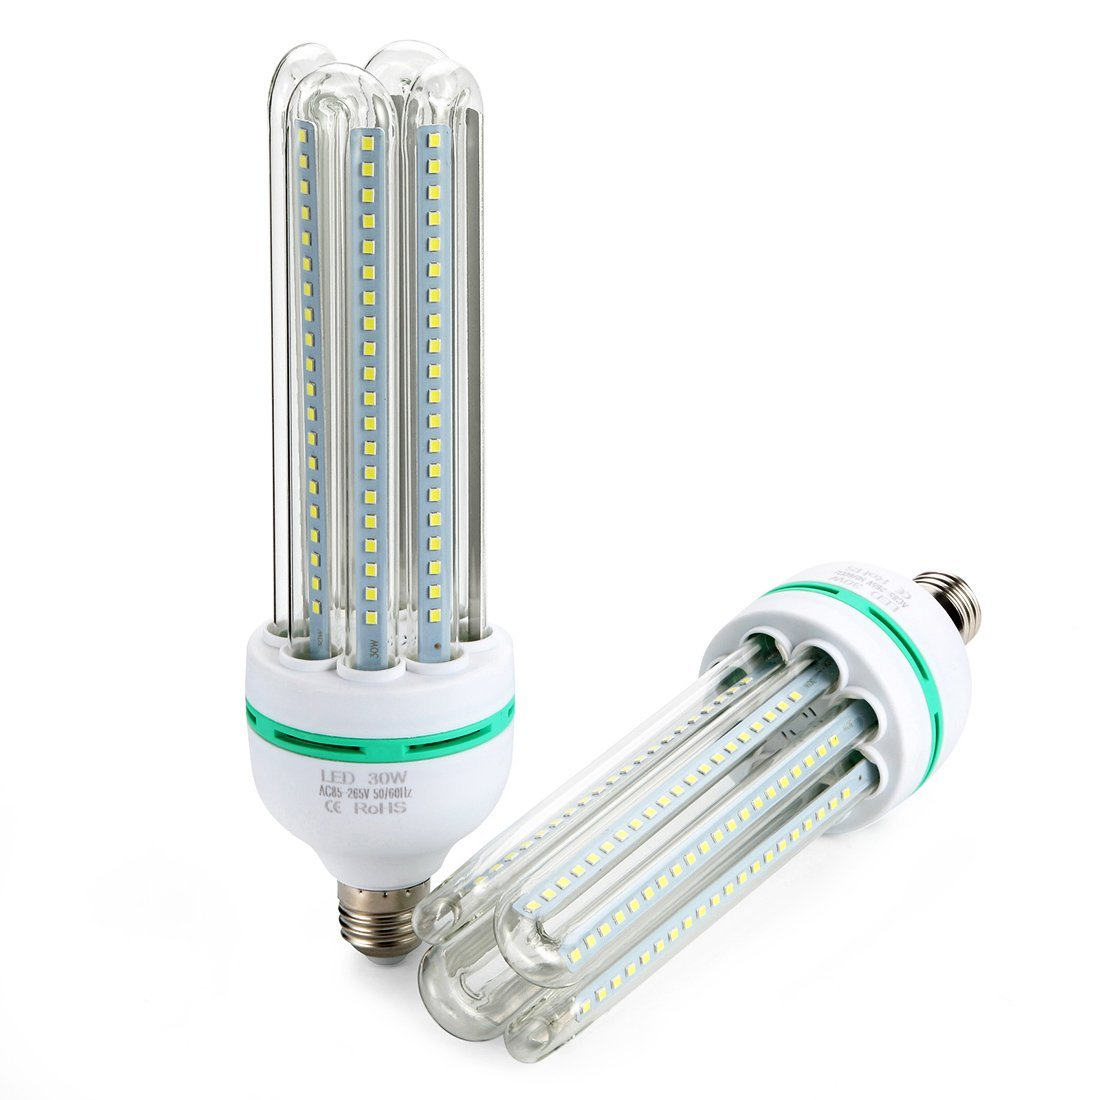 Brightest LED Bulb Light E27 SMD2835 3W 7W 9W 12W 20W 30W 36W White Energy Saving Lamps LED Lights Corn Bulbs for Home (30)